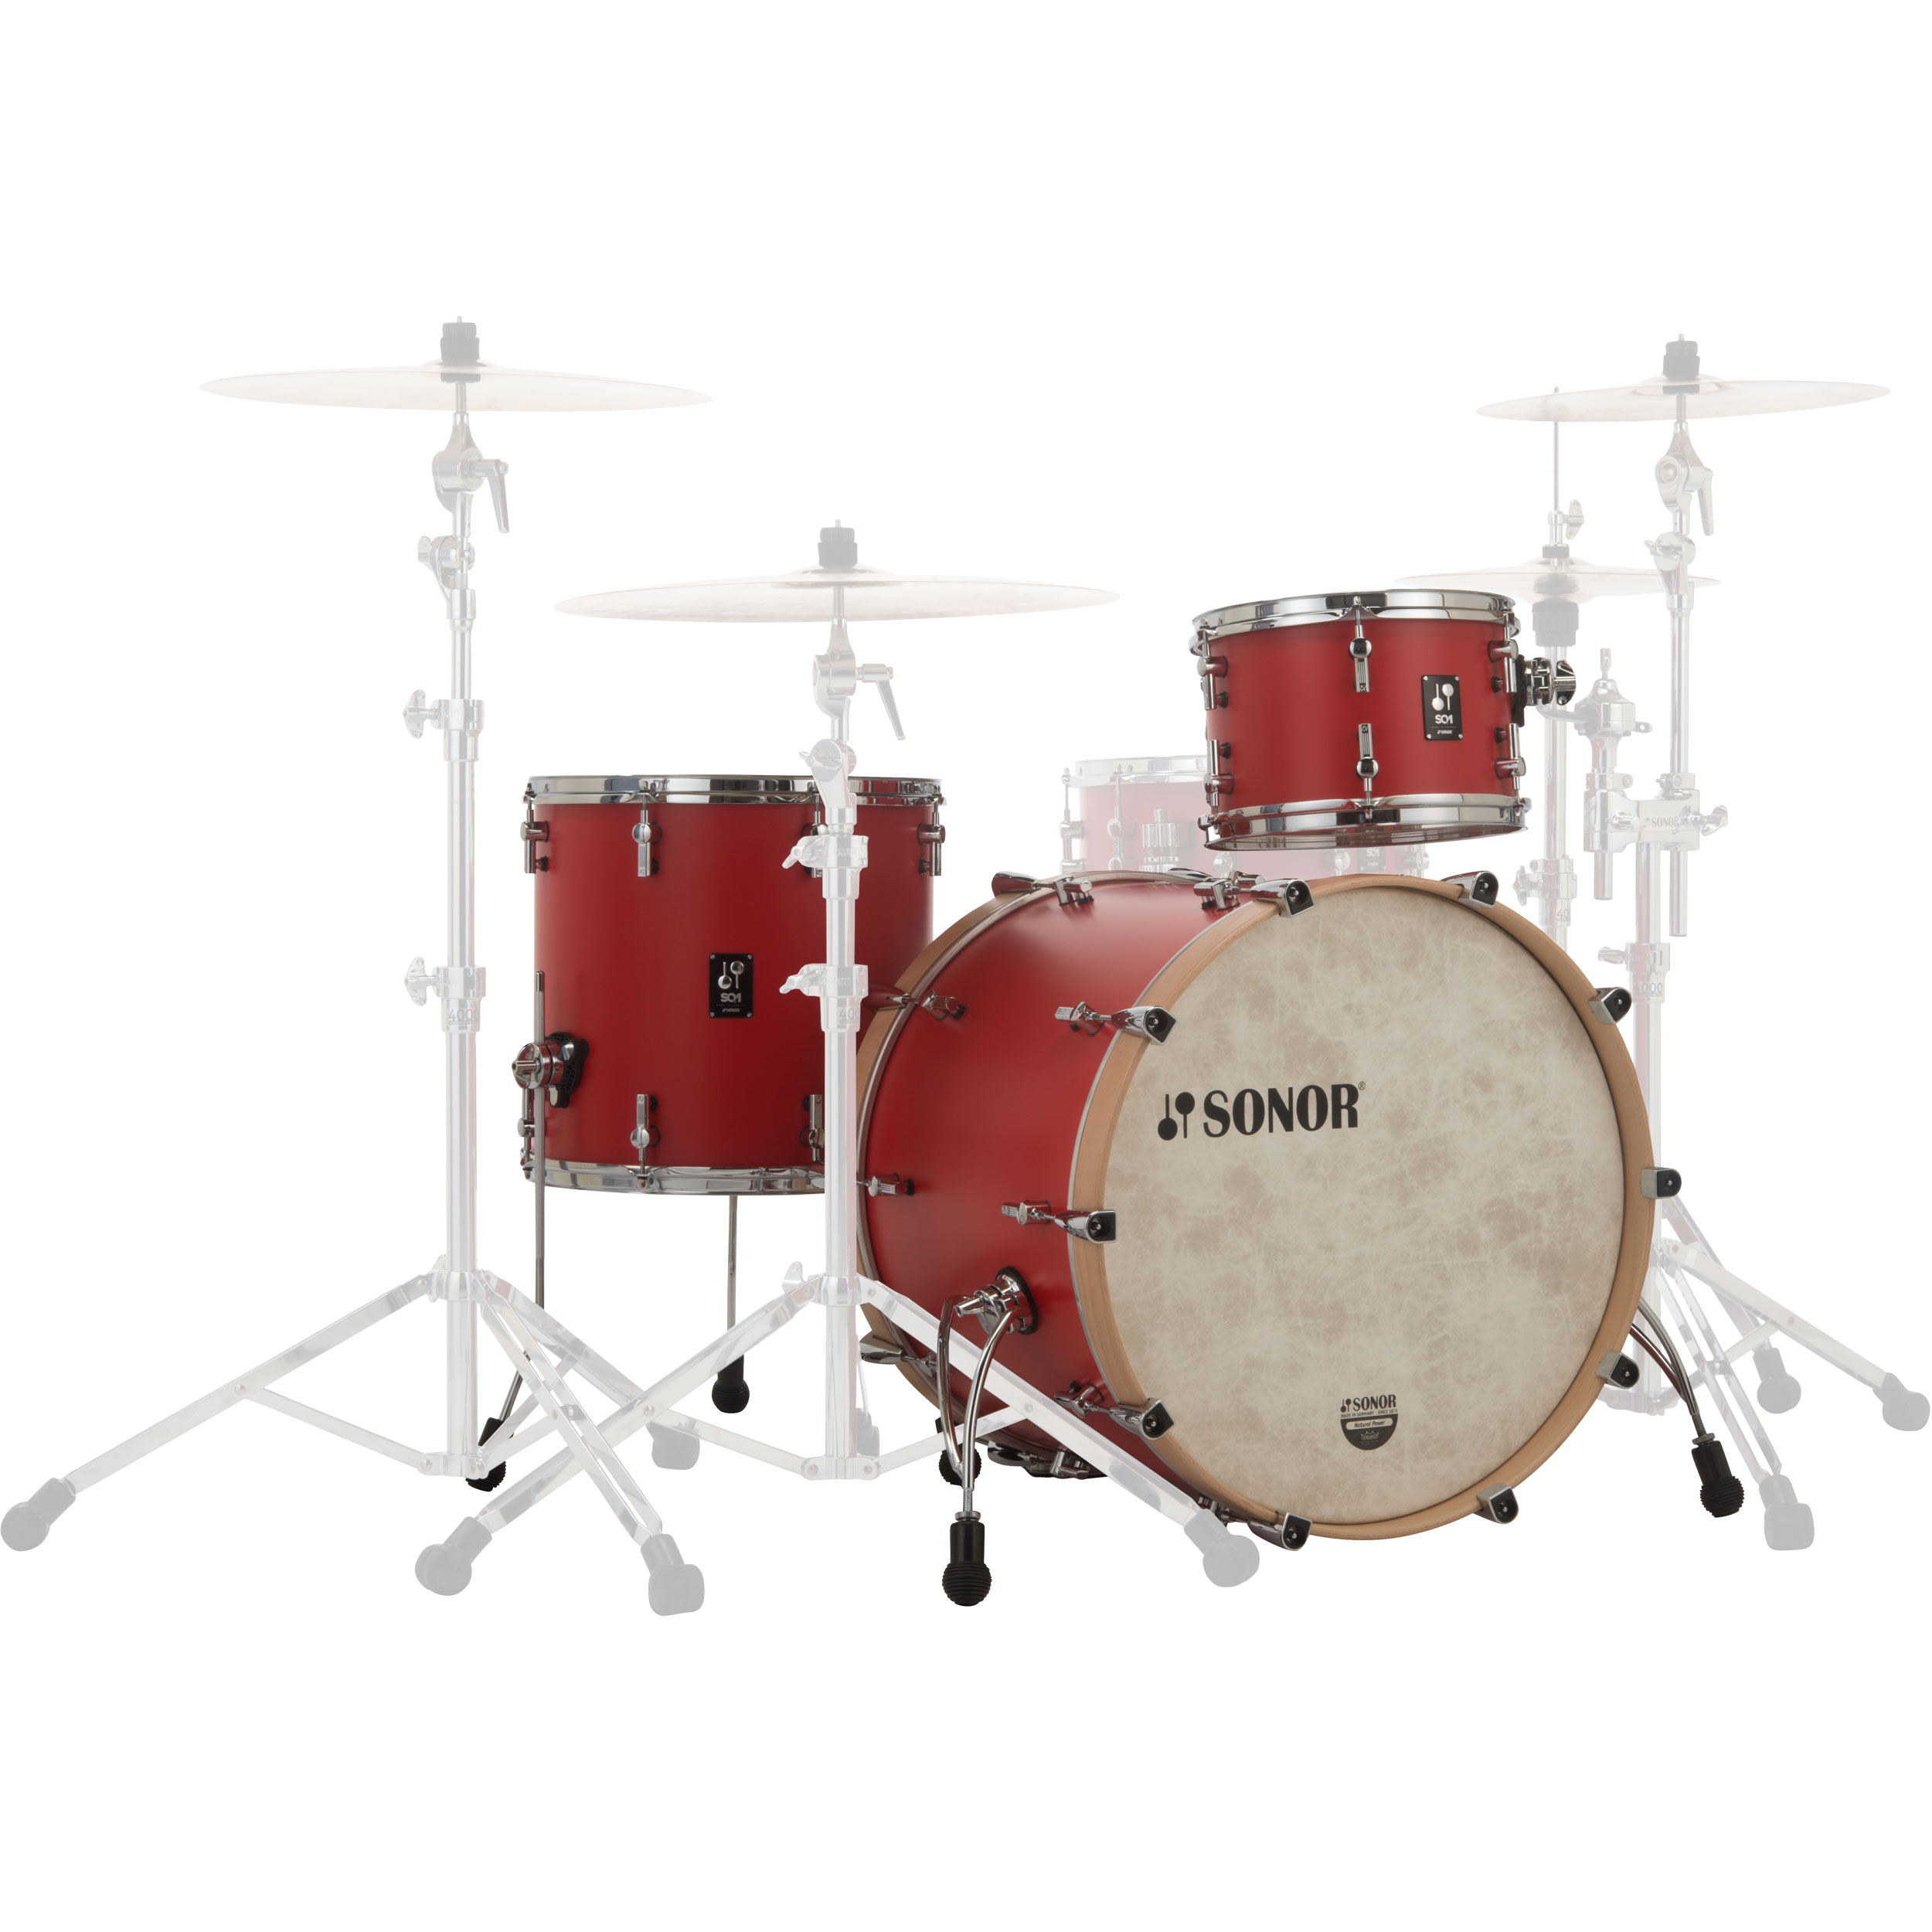 "Sonor SQ1 3-Piece Drum Set Shell Pack (22"" Bass, 12/16"" Toms)"